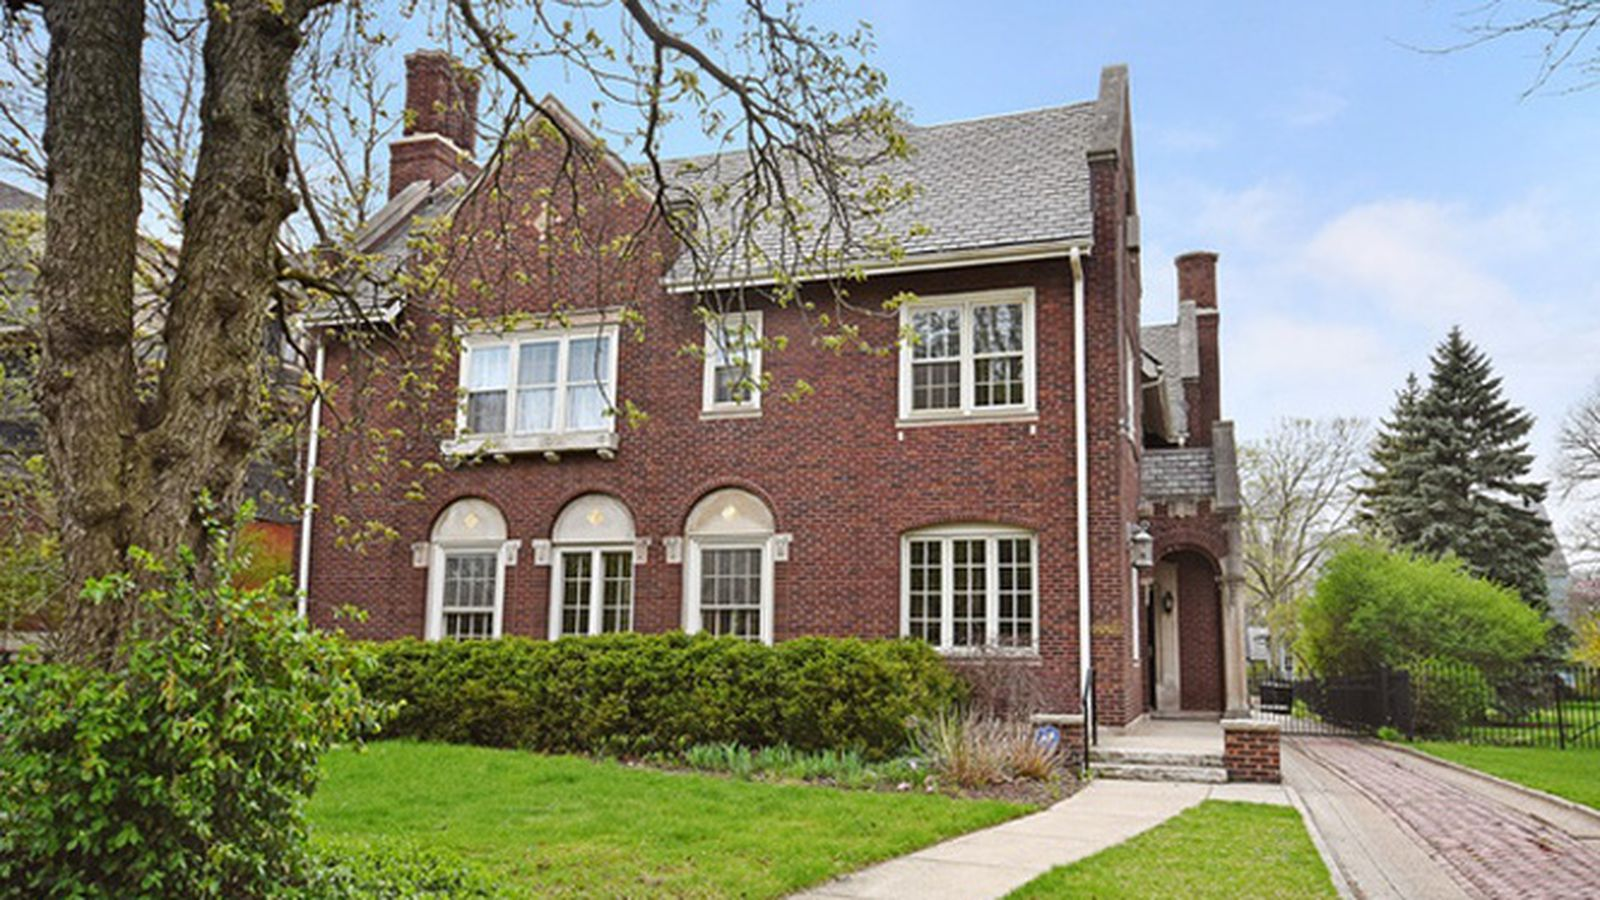 Alfred alschuler designed mansion in kenwood shaves 400k for Mansions for sale in chicago